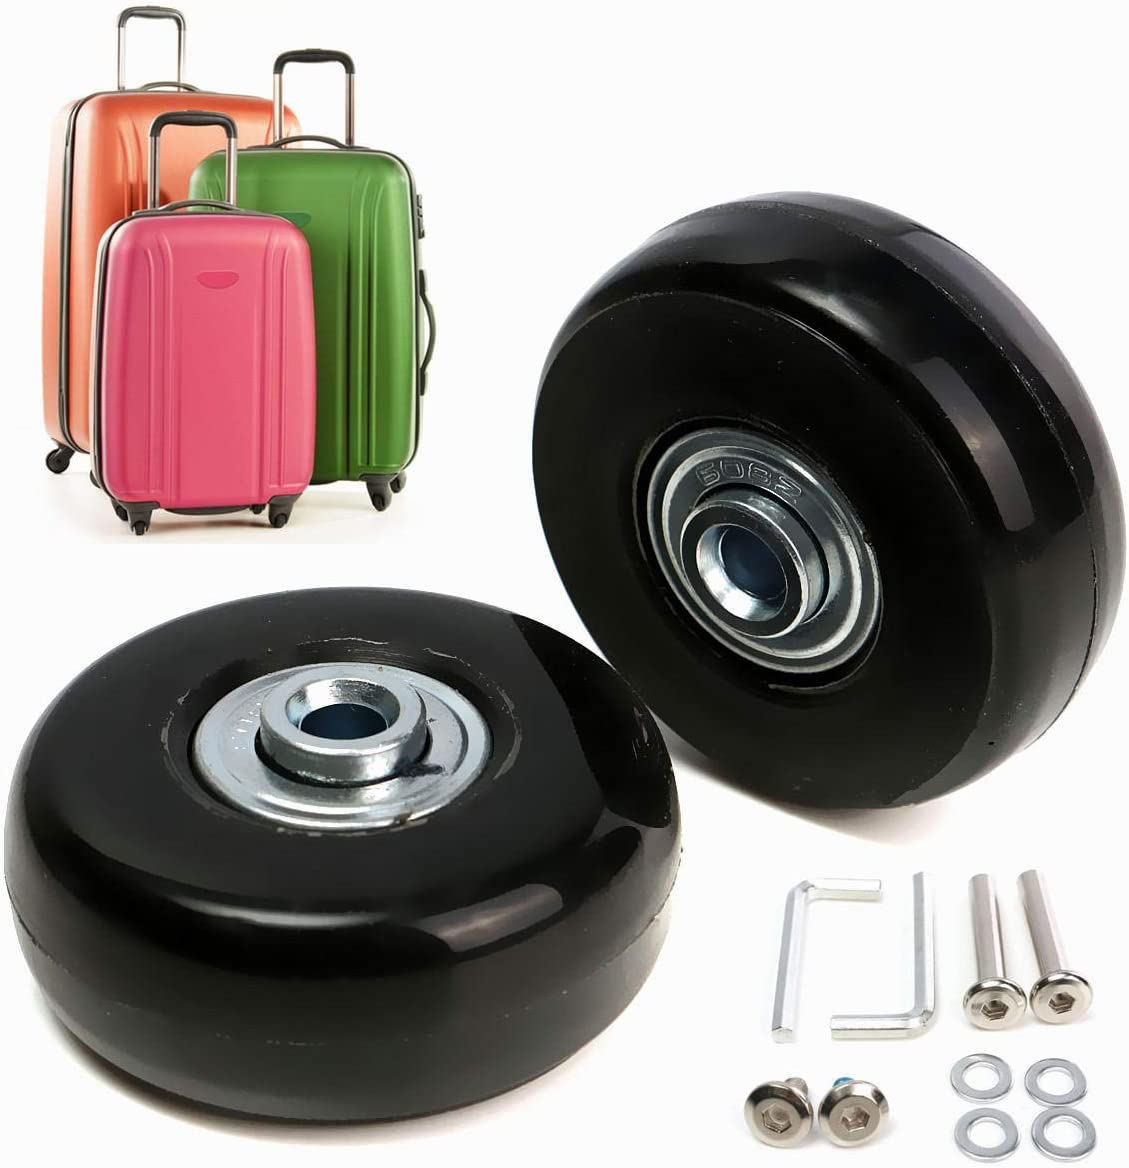 2pcs  Luggage Suitcase Replacement Wheels Axles Deluxe Repair 5022mm